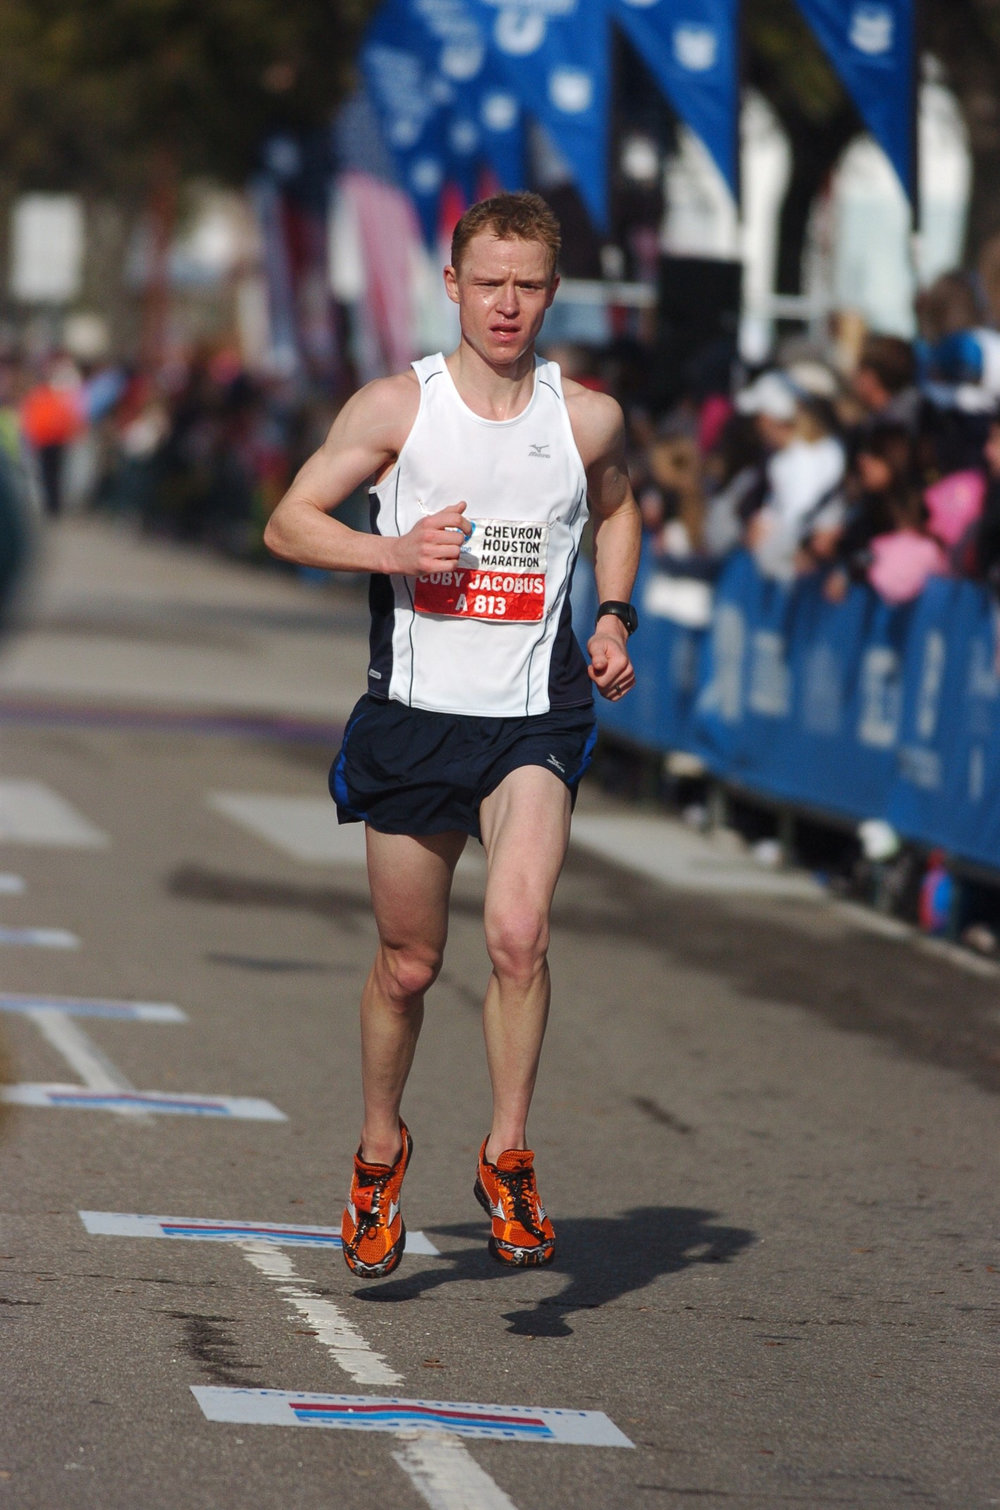 Coming down the homestretch at the Houston Marathon in 2010 - About 20 months following surgery.